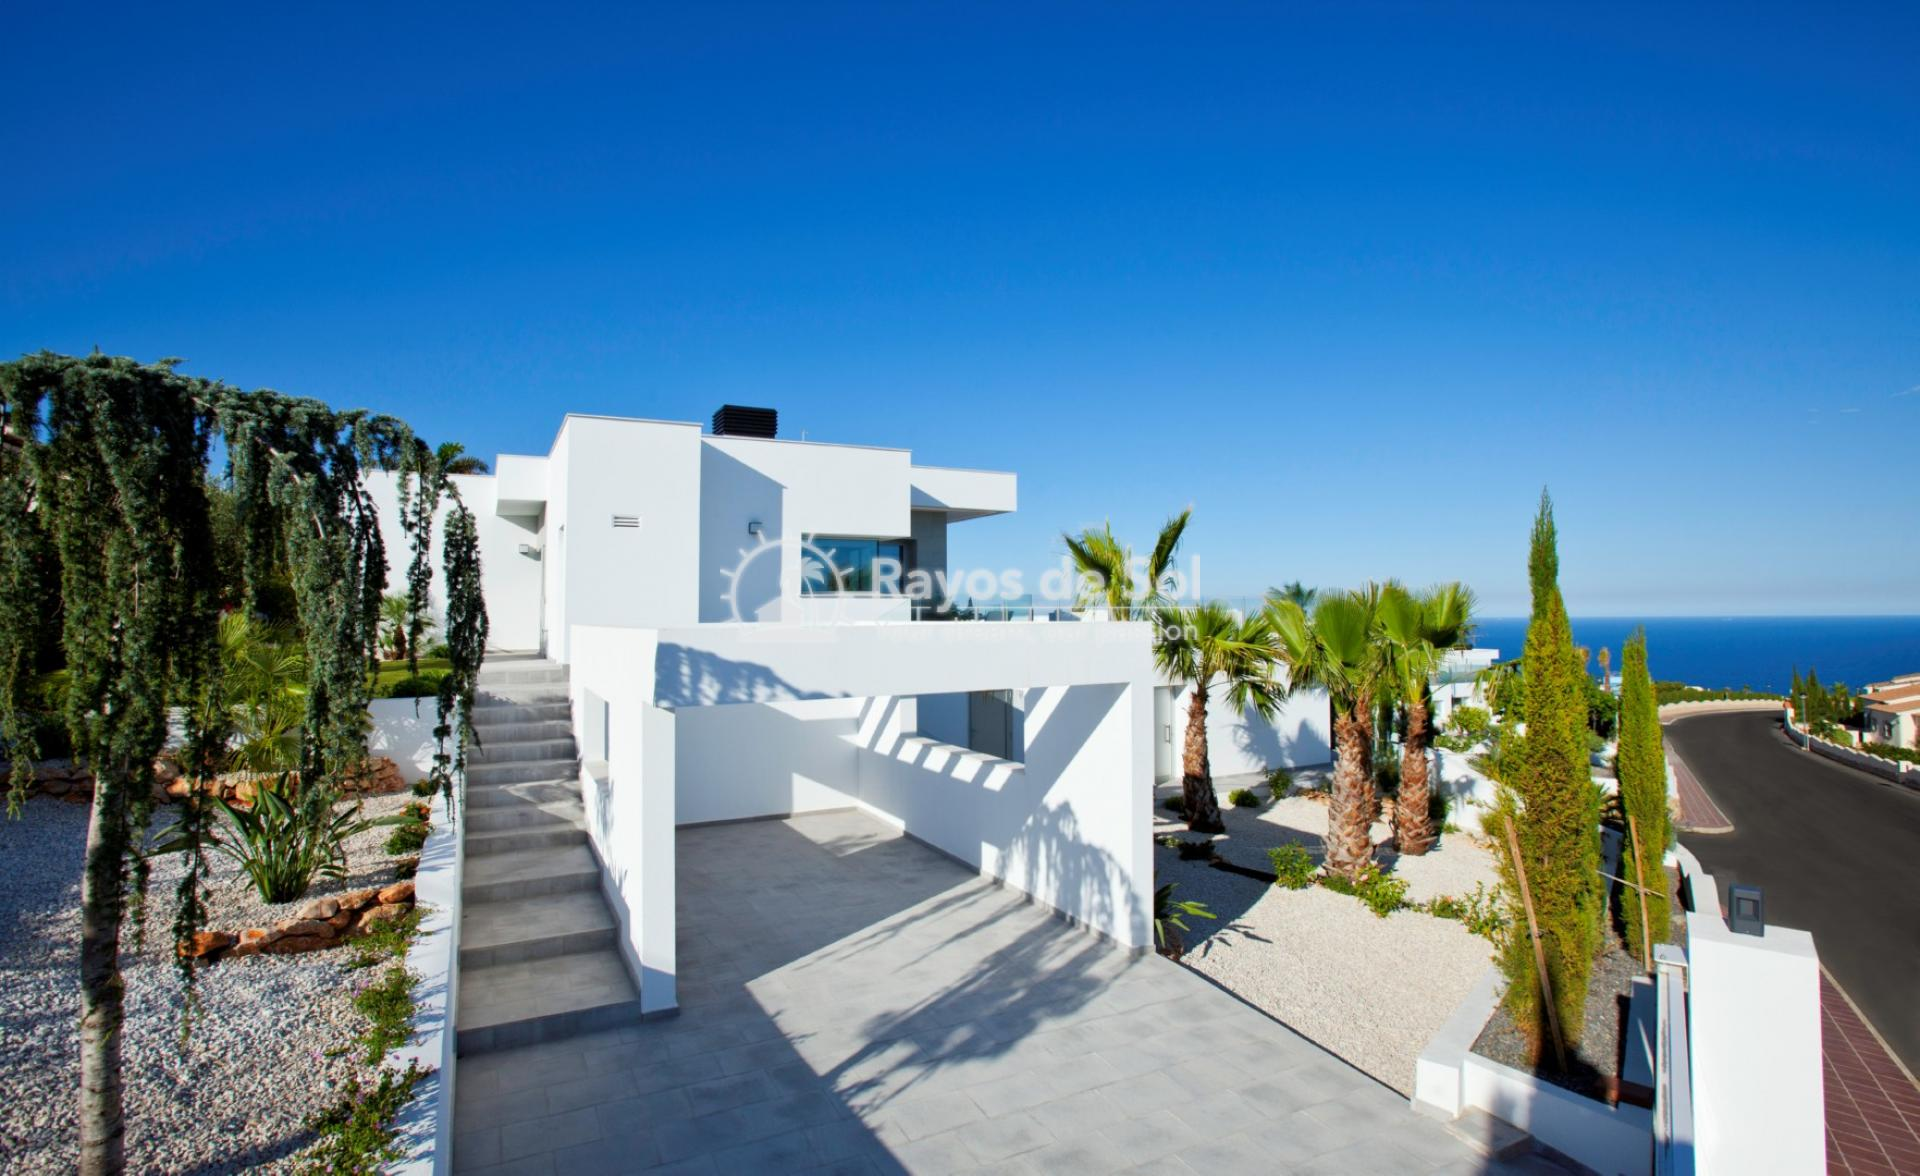 Villa with fantastic views in Cumbre del Sol, Benitachell, Costa Blanca (BEVALIDSIXL) - 2